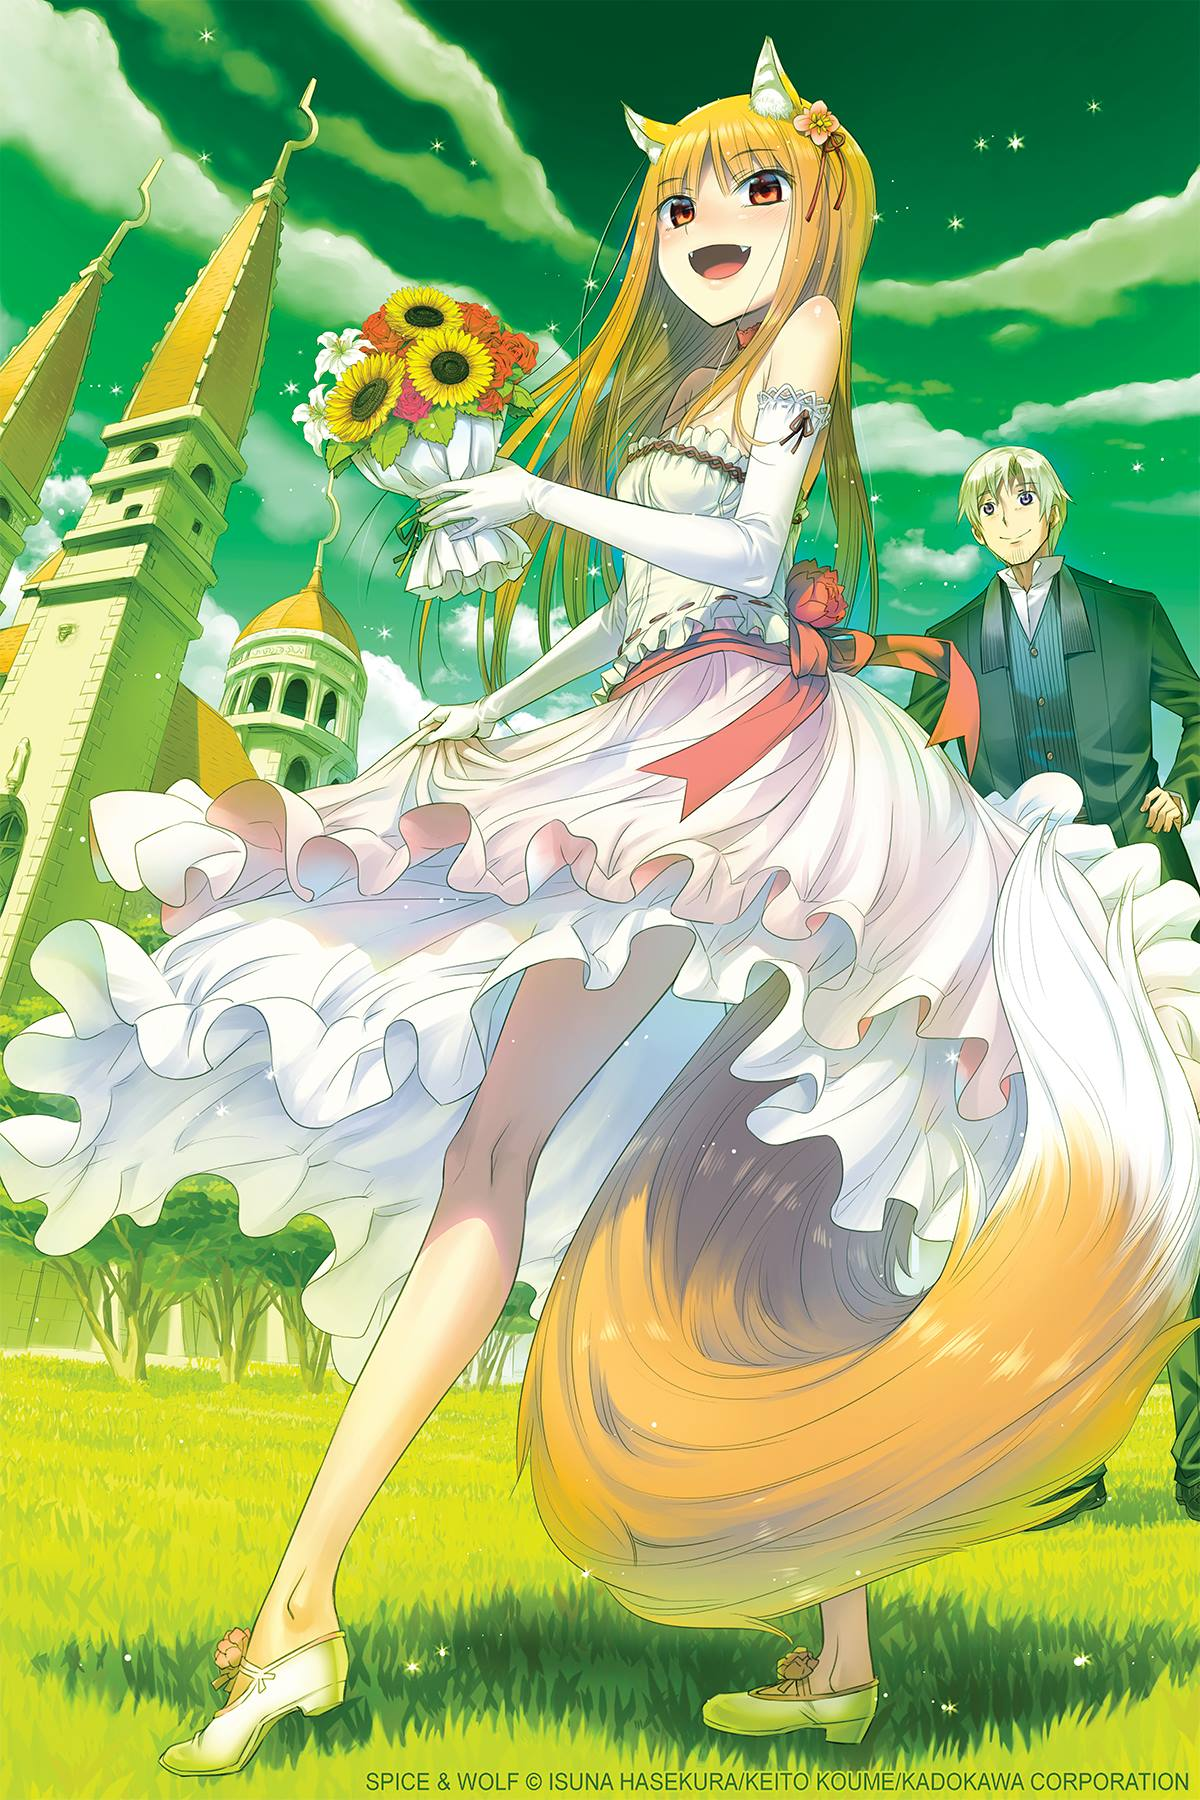 1boy 1girl :d animal_ear_fluff animal_ears arched_soles artist_name bangs bare_legs bare_shoulders bouquet breasts castle clouds cloudy_sky company_name copyright_name craft_lawrence dress elbow_gloves fangs fisheye flower frilled_dress frills full_body gloves grass green_sky green_theme high_heels highres historical holding holding_bouquet holo kadokawa kneepits koume_keito large_tail layered_dress legs_apart long_hair long_legs looking_at_viewer official_art on_grass open_mouth orange_eyes orange_hair outdoors outstretched_leg perspective red_flower red_ribbon ribbon ribbon-trimmed_dress sash shadow shiny shiny_hair skinny sky small_breasts smile spice_and_wolf standing straight_hair sunflower tail too_many too_many_frills watermark wedding_dress white_dress white_gloves wolf_ears wolf_girl wolf_tail yellow_flower